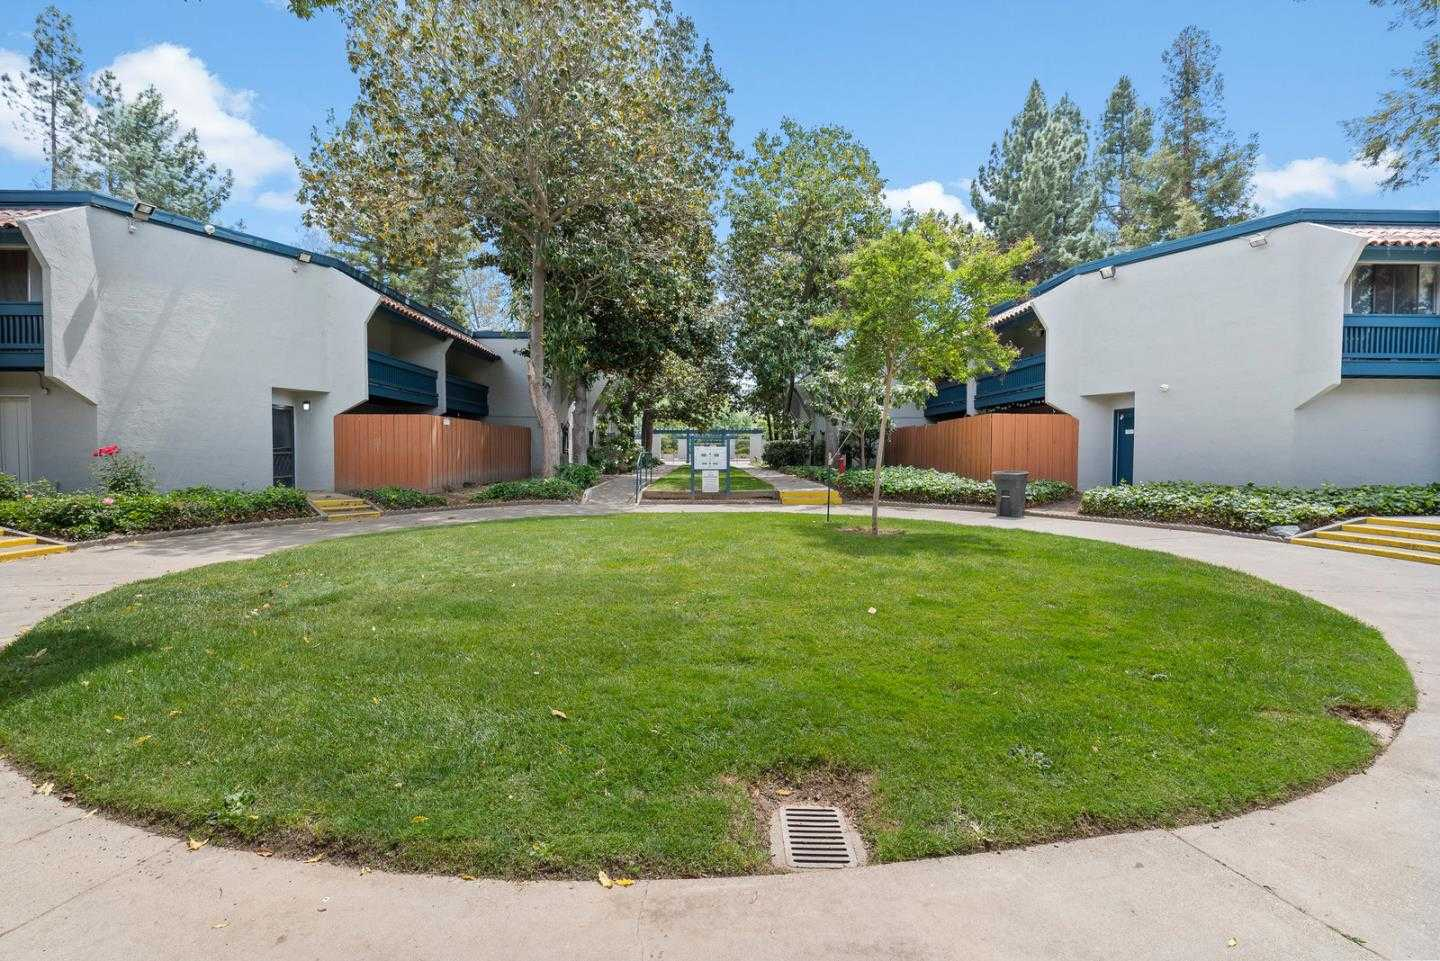 $370,000 - 2Br/1Ba -  for Sale in Livermore